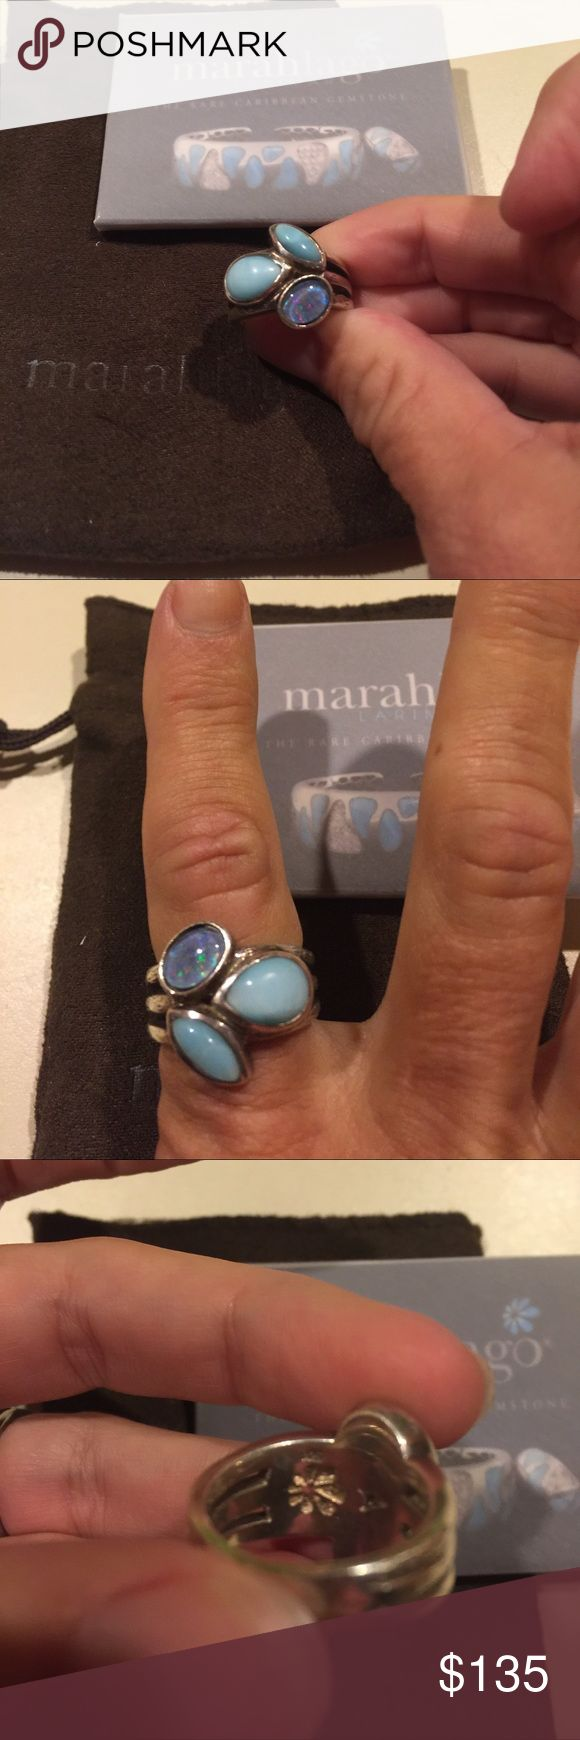 Marahlago Australian opal ring with Larimar Marahlago Australian opal and Larimar ring set in Sterling silver. Very beautiful only worn a handful of times! Have anti tarnish bag registration and cleaning cloth. It's gotten too big. Size 7 Marahlago Jewelry Rings